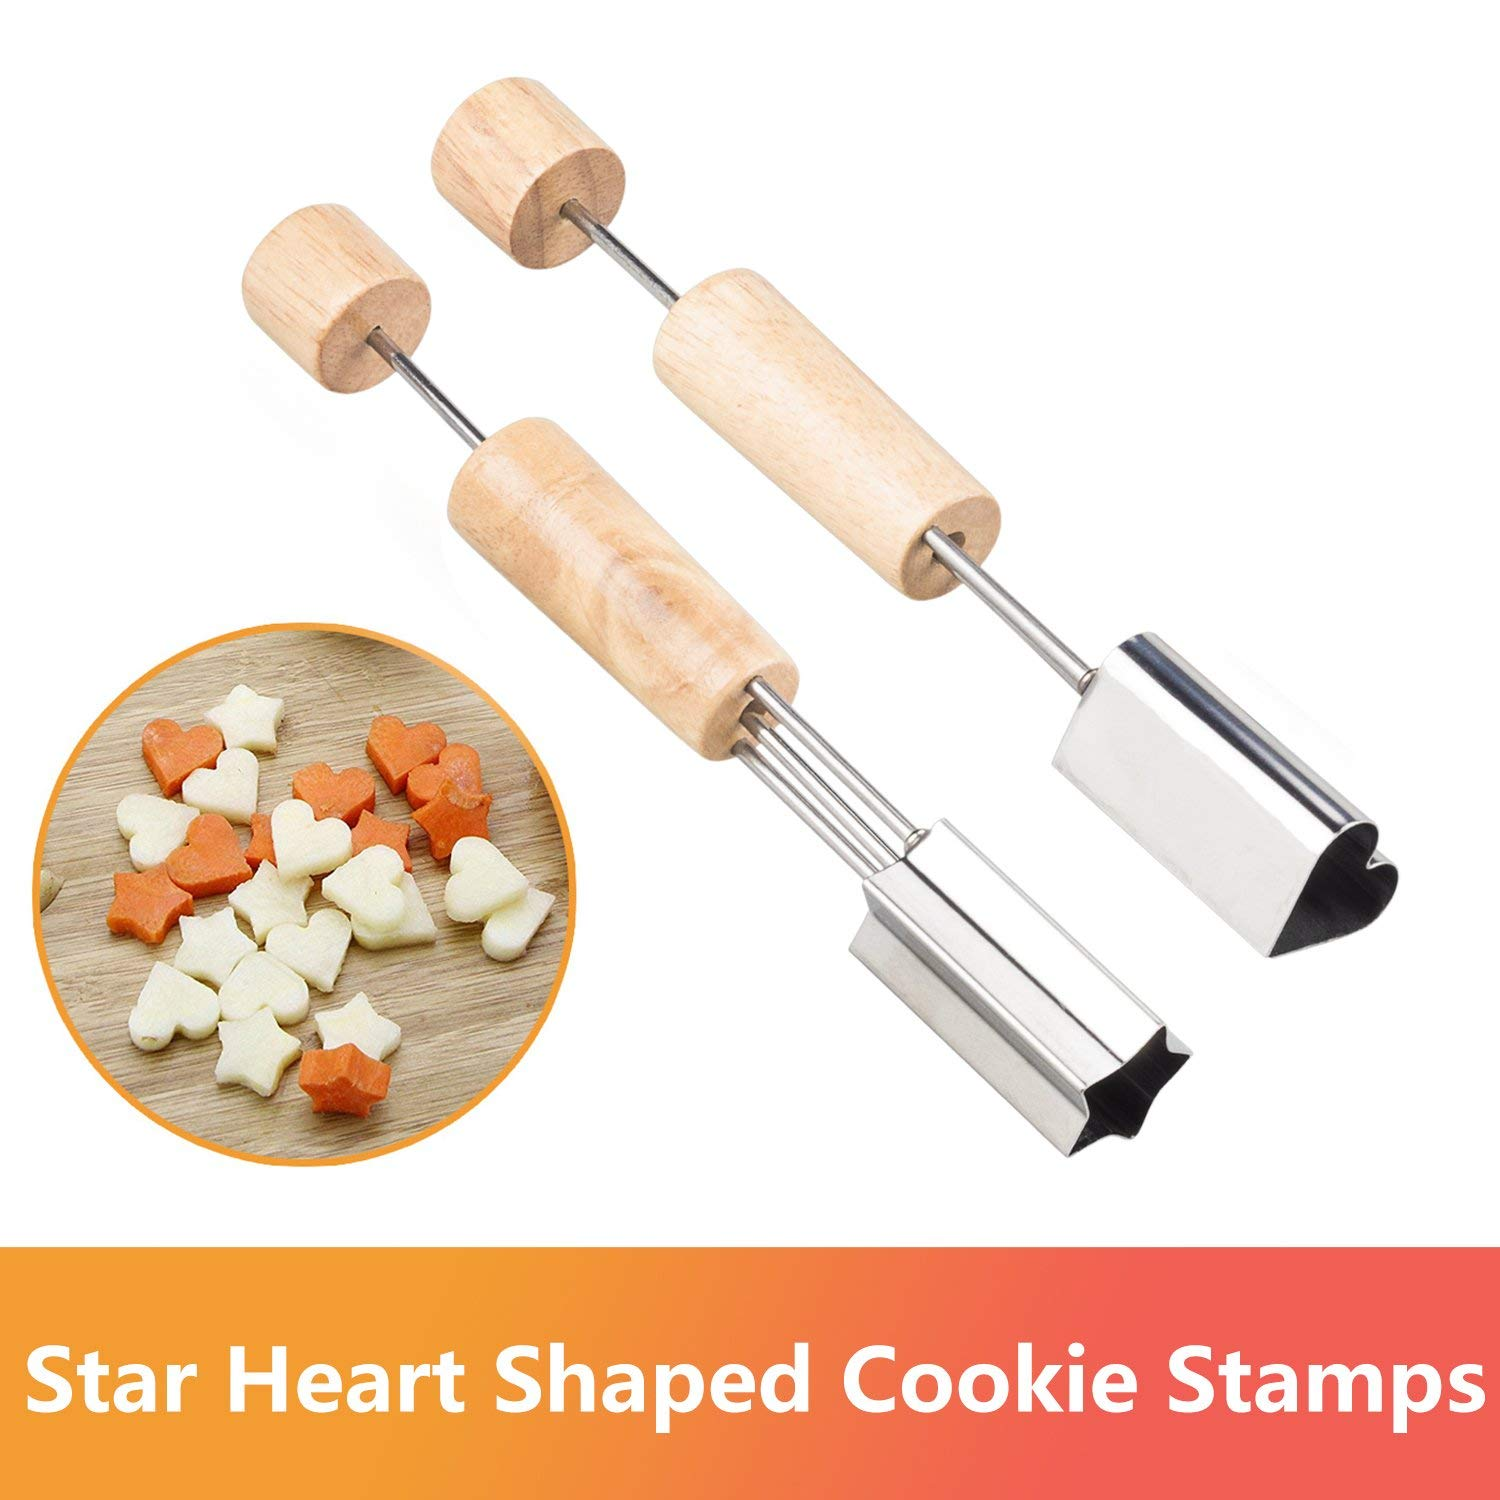 Mini Cookie Cutters Set – Vegetable Cutter Shapes/Cookie Biscuit Cutter Set,Vegetable Fruit Cookie Cutter Mold/Star Heart Shaped Wooden Handle Cutters